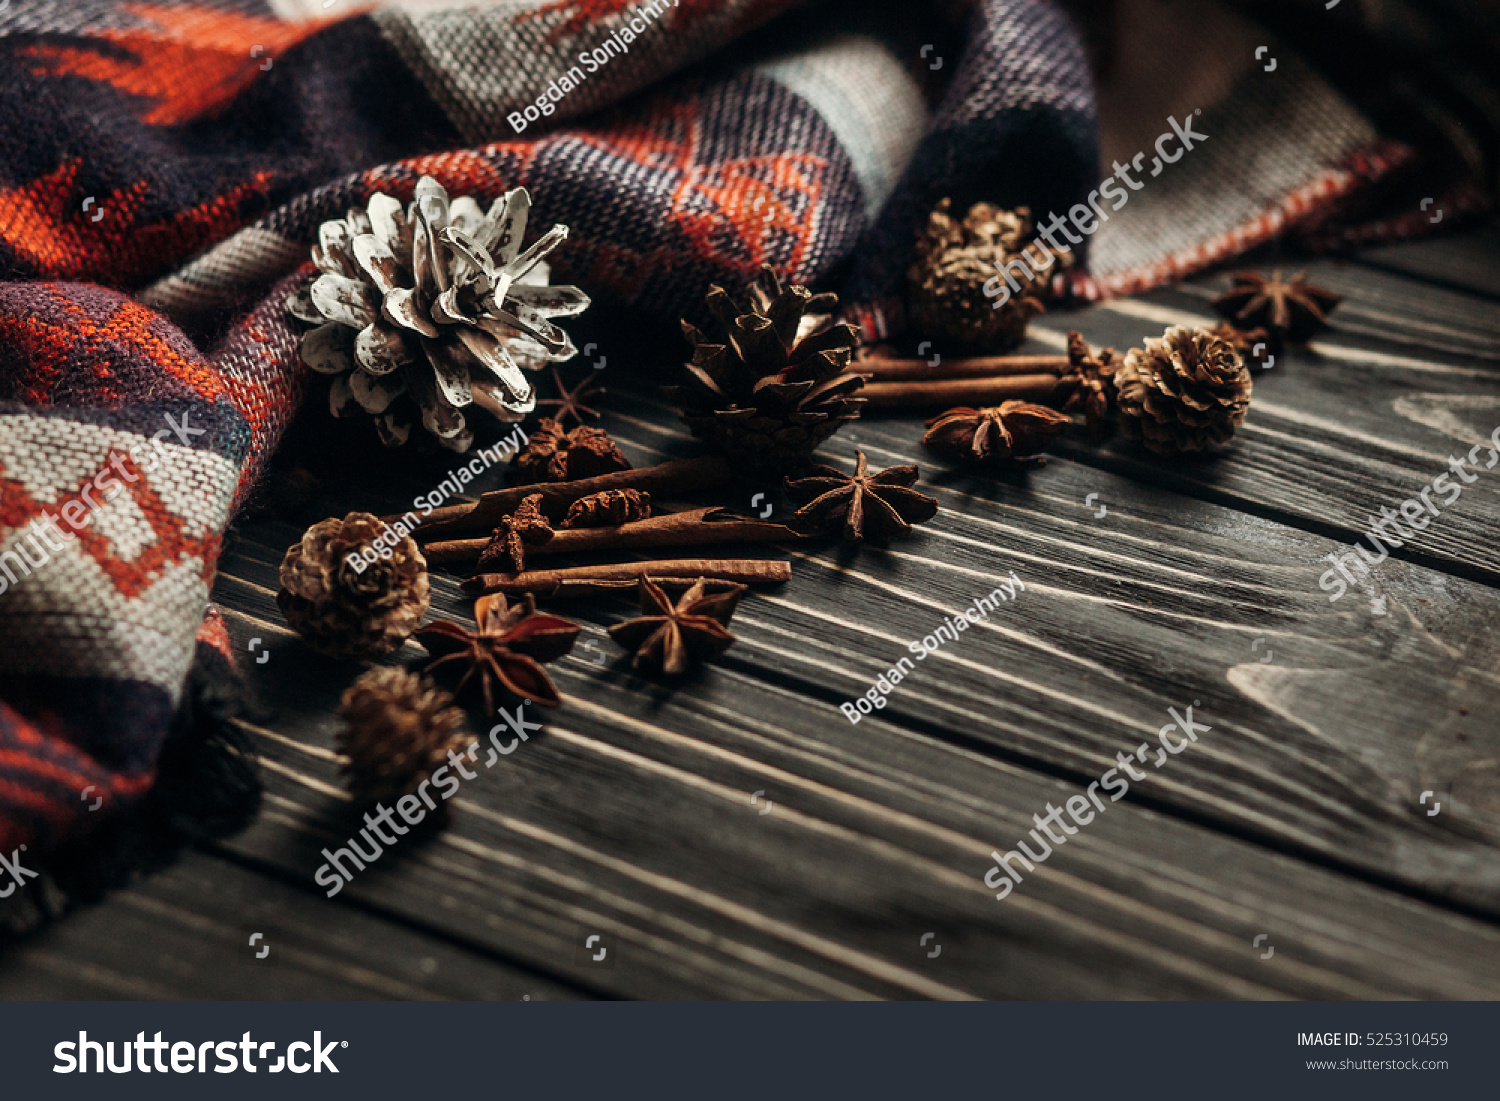 Stylish Winter Or Autumn Wallpaper Anise Cinnamon And Pine Cones On Wooden Rustic Background